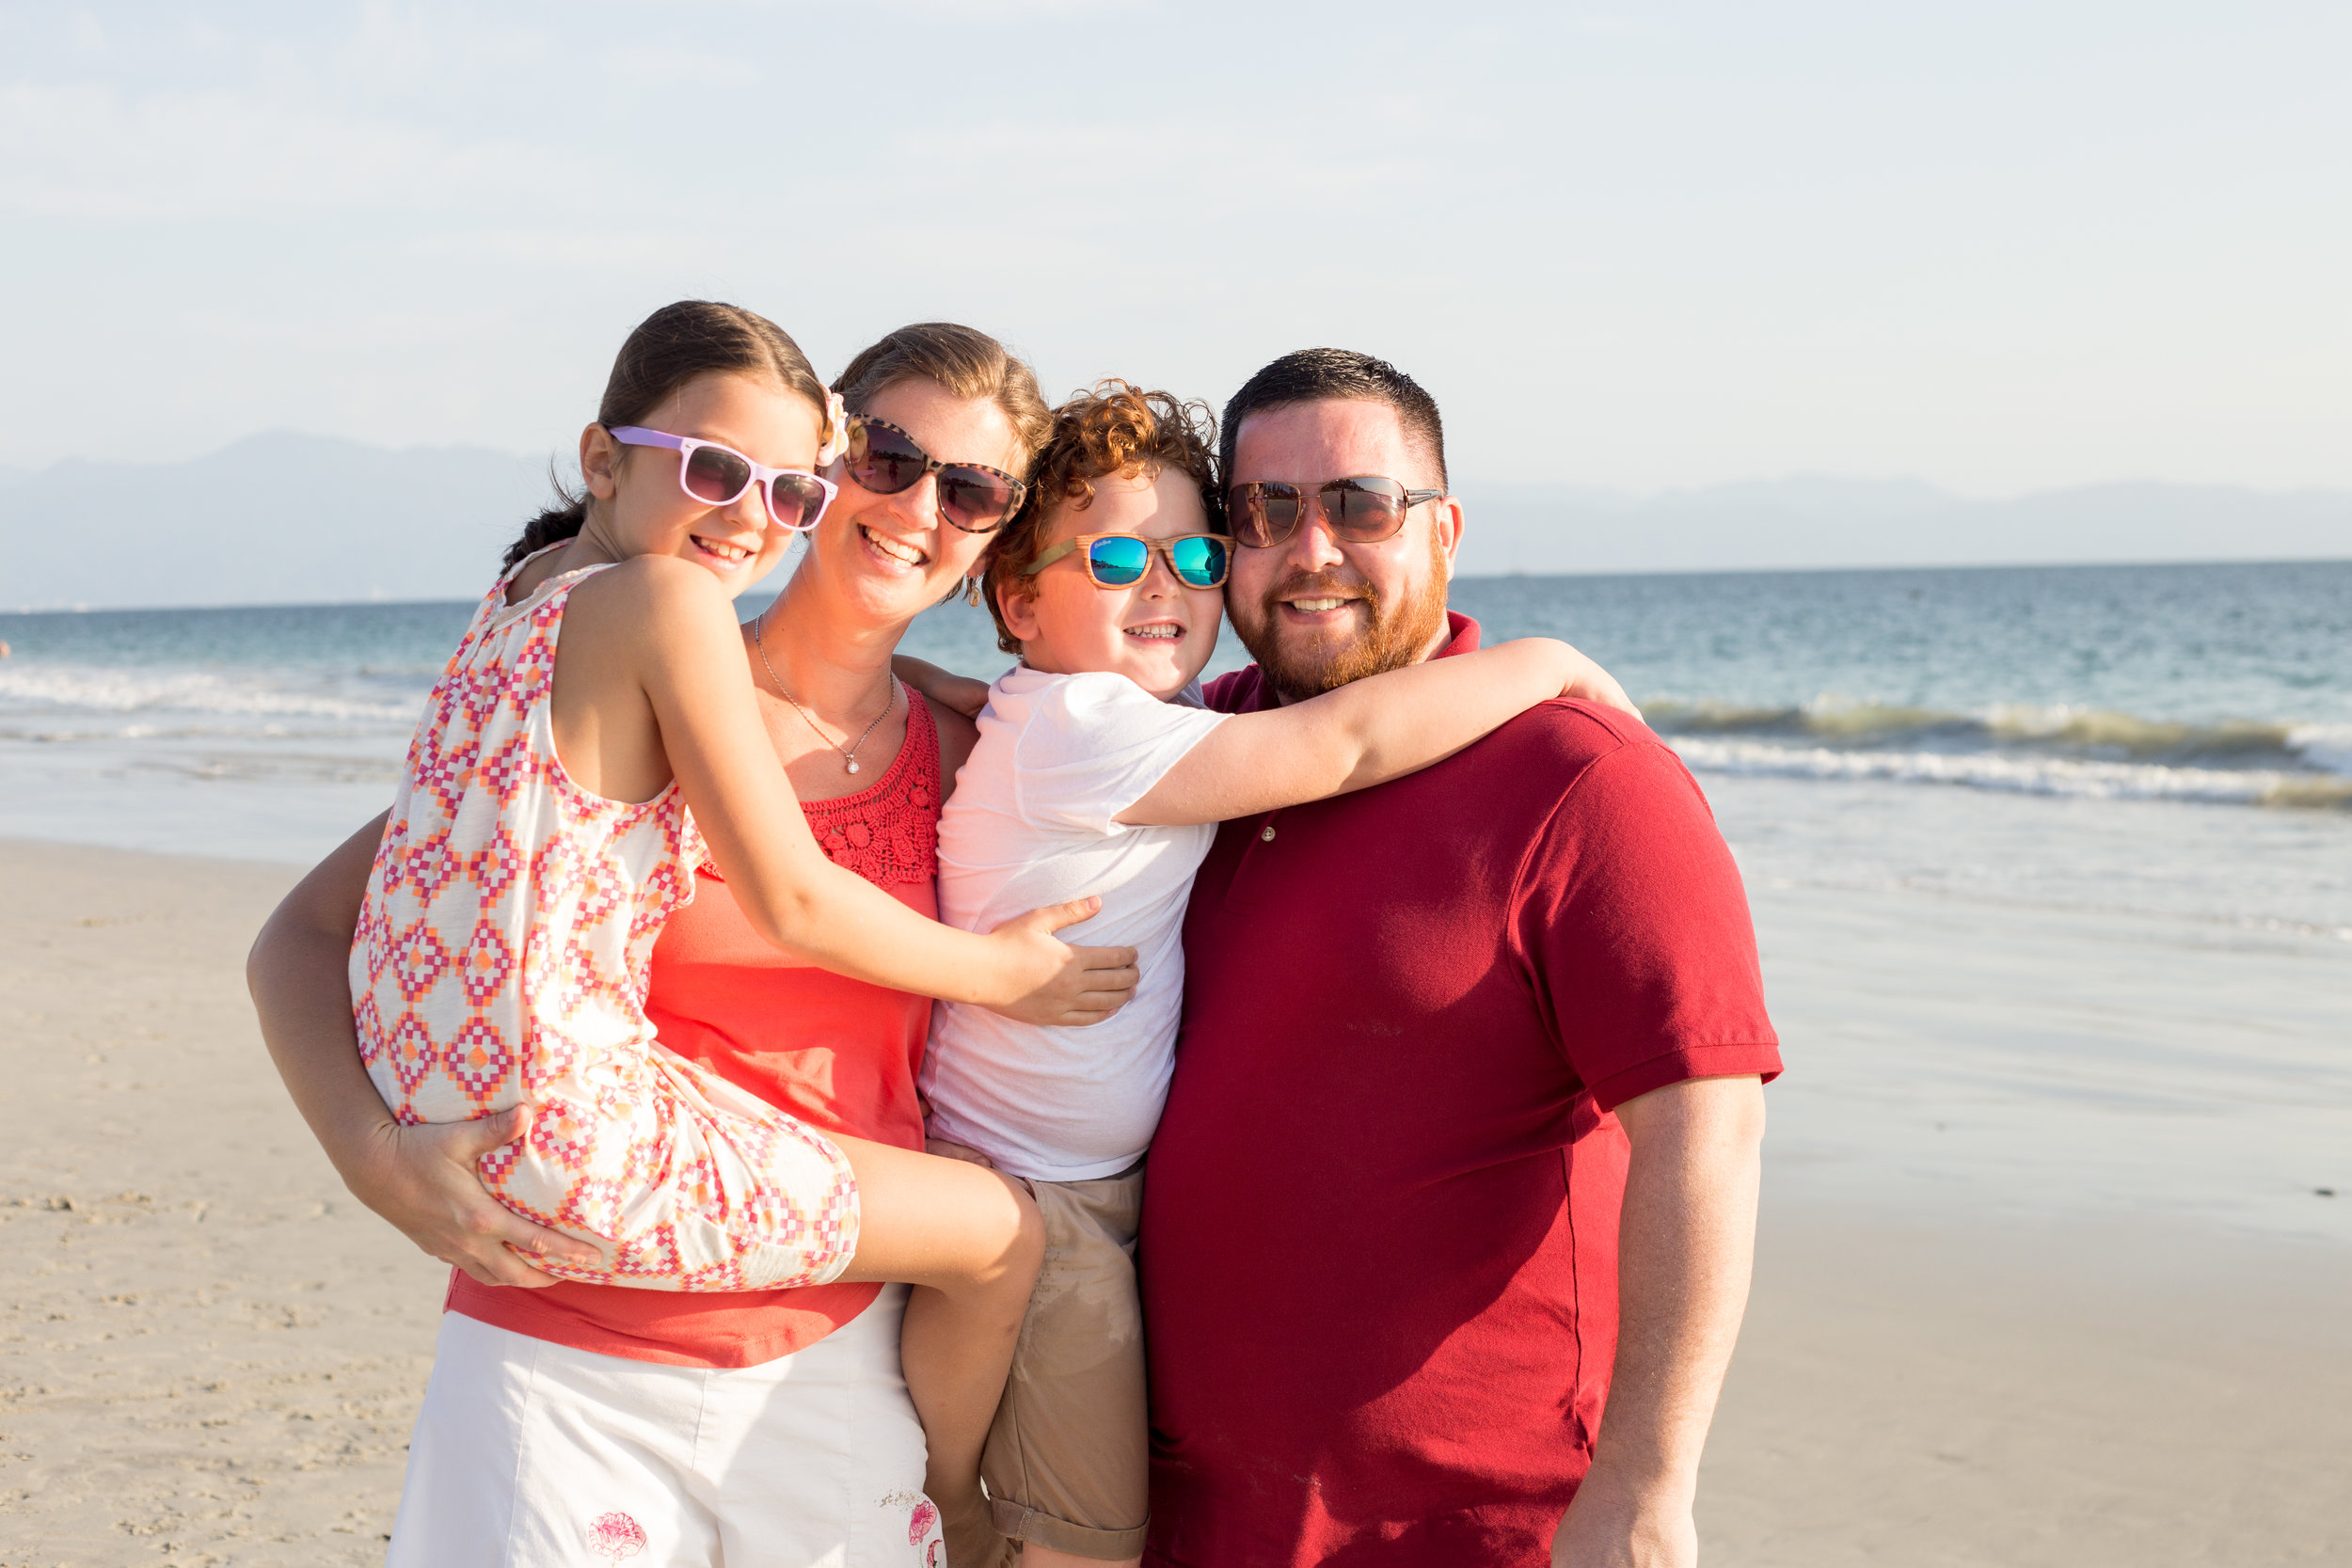 fun-family-ideas-portraits-puerto-vallarta-mexico-photographer